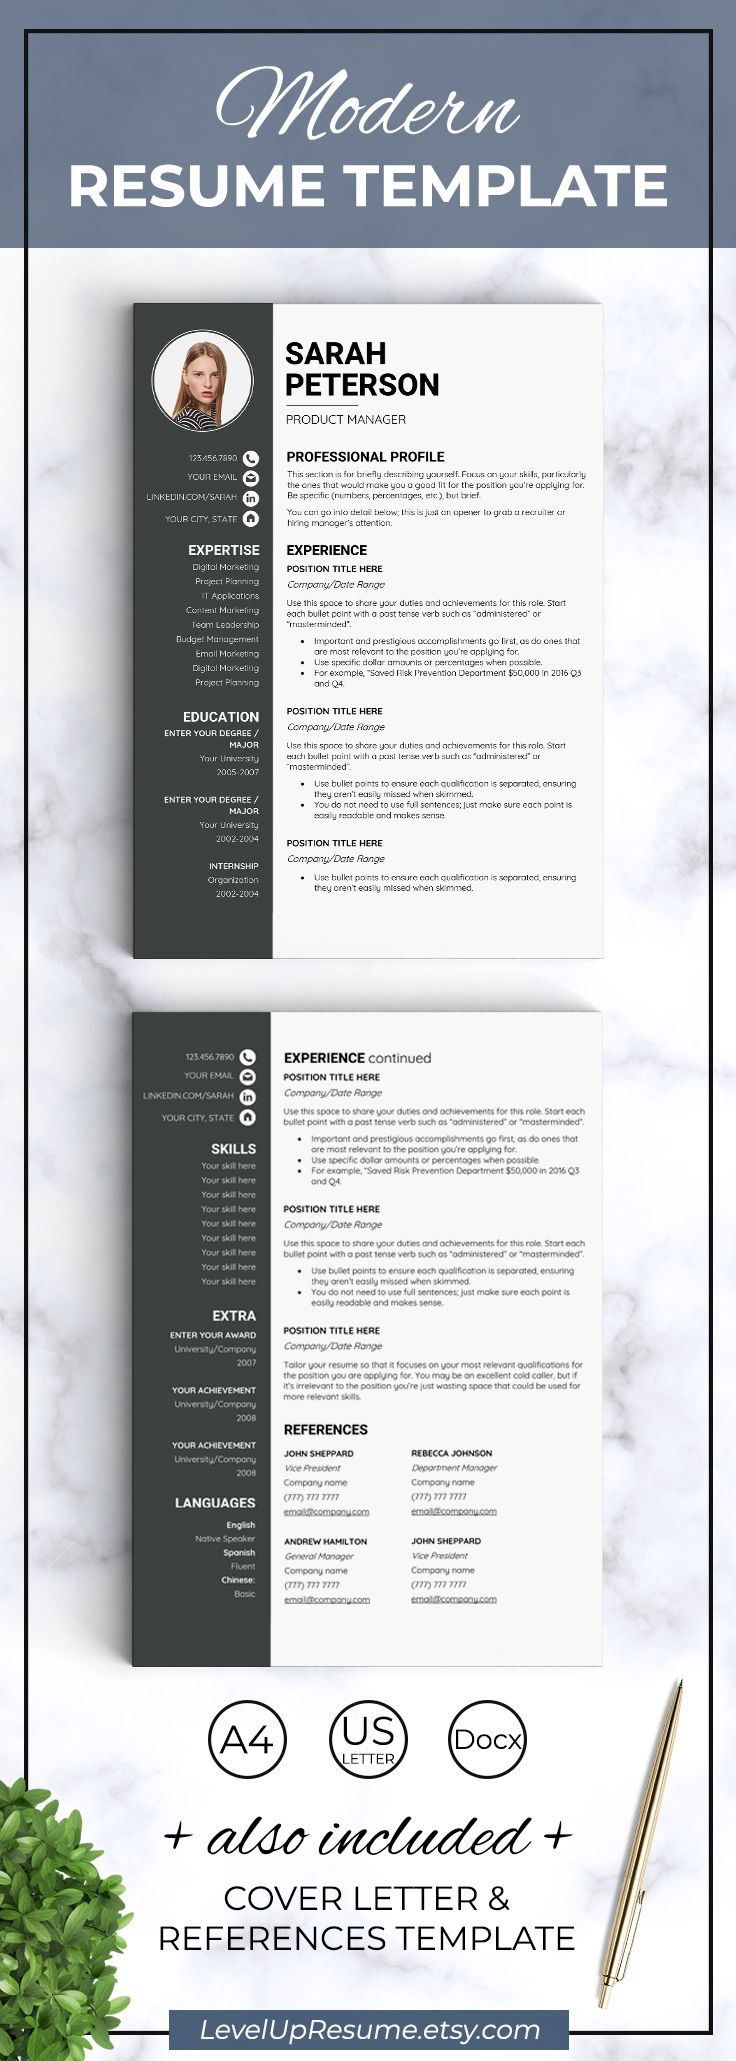 Standard Resume Font Resume With Photo Two Page Resume Template Curriculum Vitae One Page .